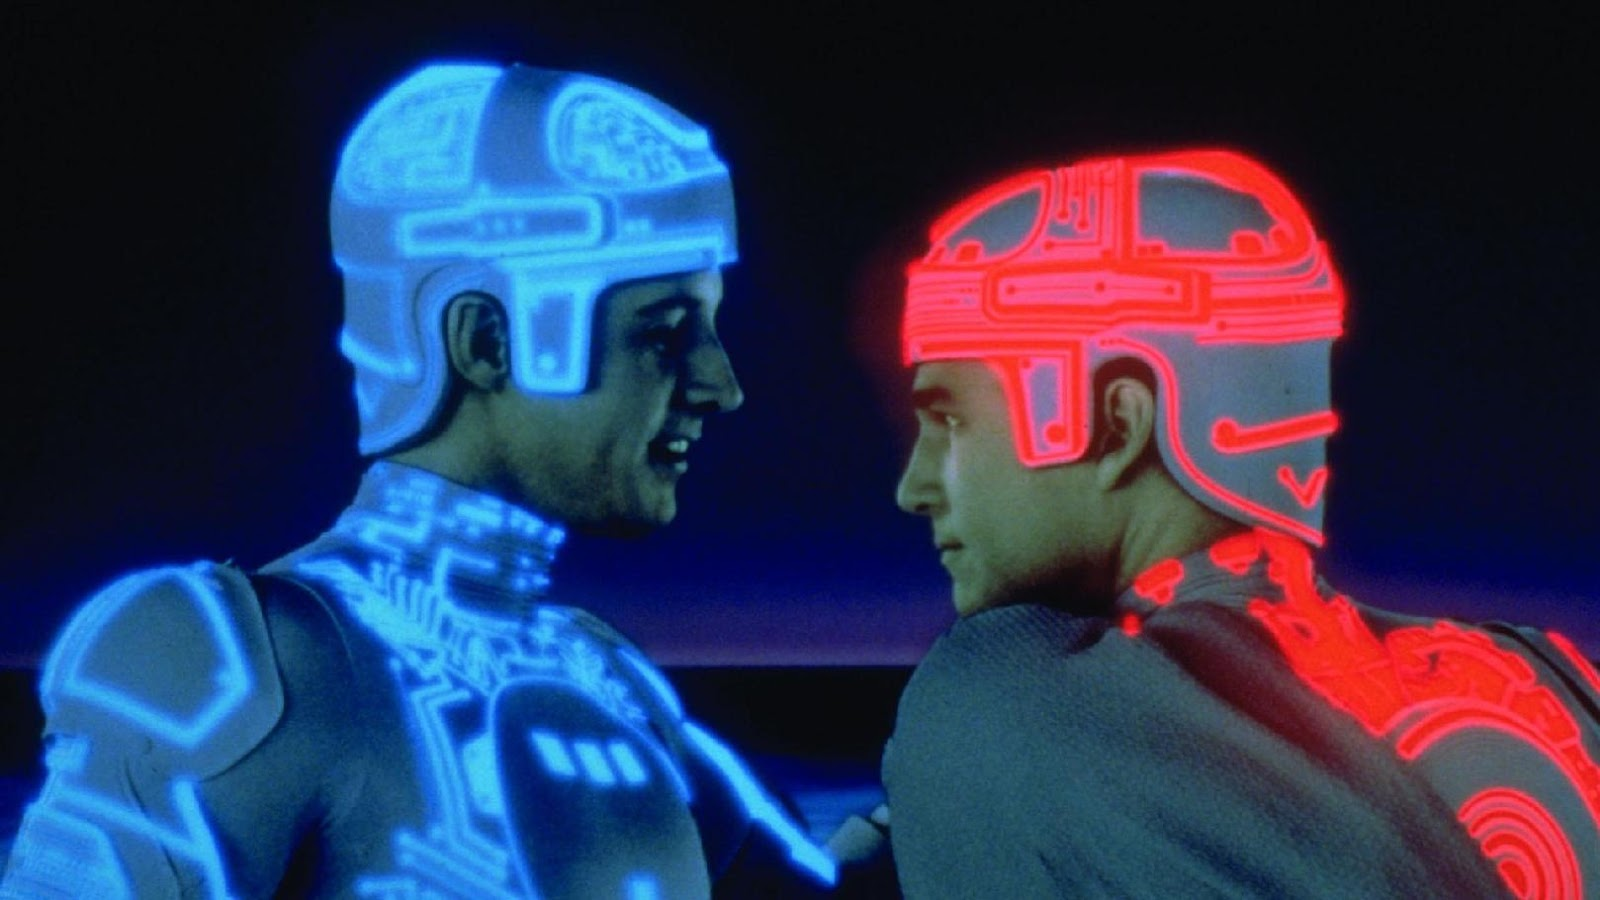 http://www.smallcinema.re-dock.org/wp-content/uploads/2012/10/tron_1982_11.jpg